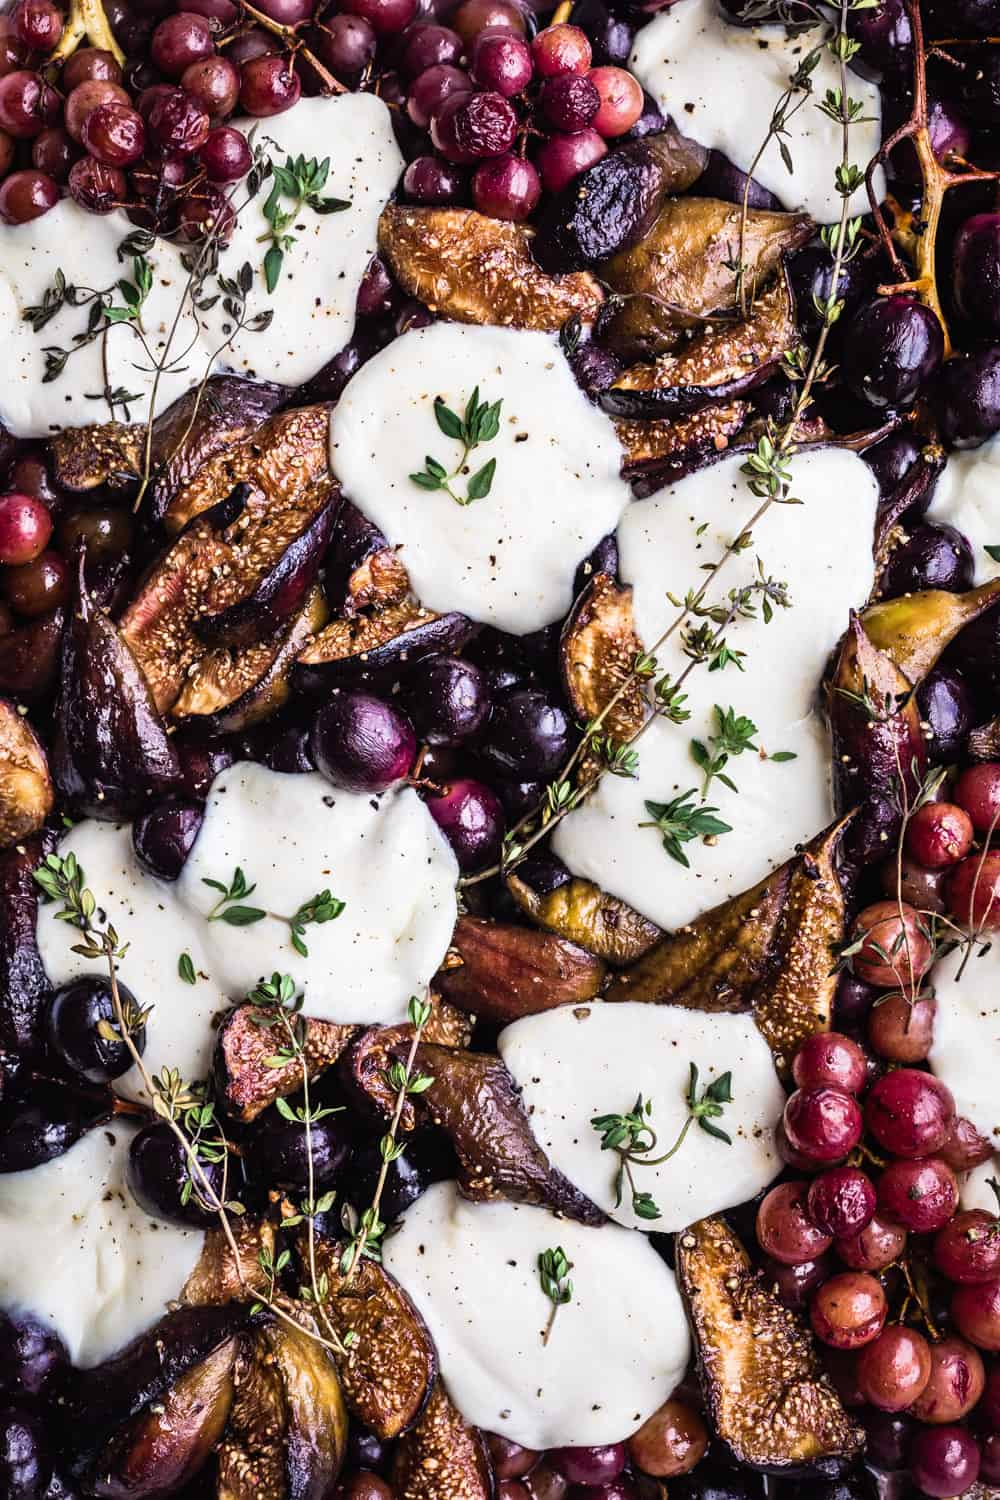 Post-oven Roasted Grapes with Figs, Burrata & Fresh Herbs. Post oven. Overhead shot.